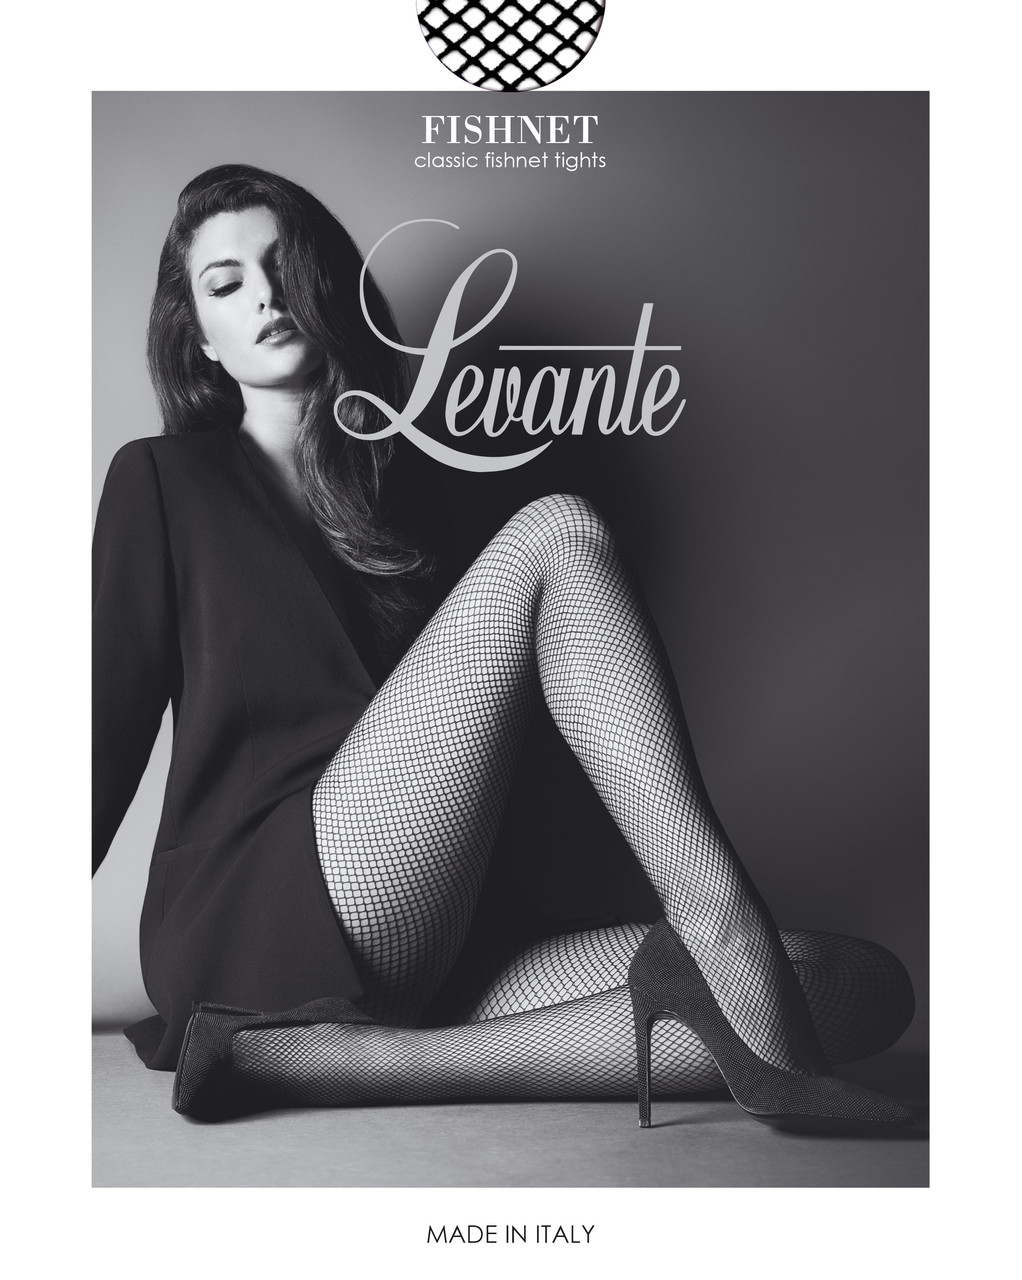 3816538aaeec5 Levante Classic Fishnet Tights - The Hobart Stocking Shop